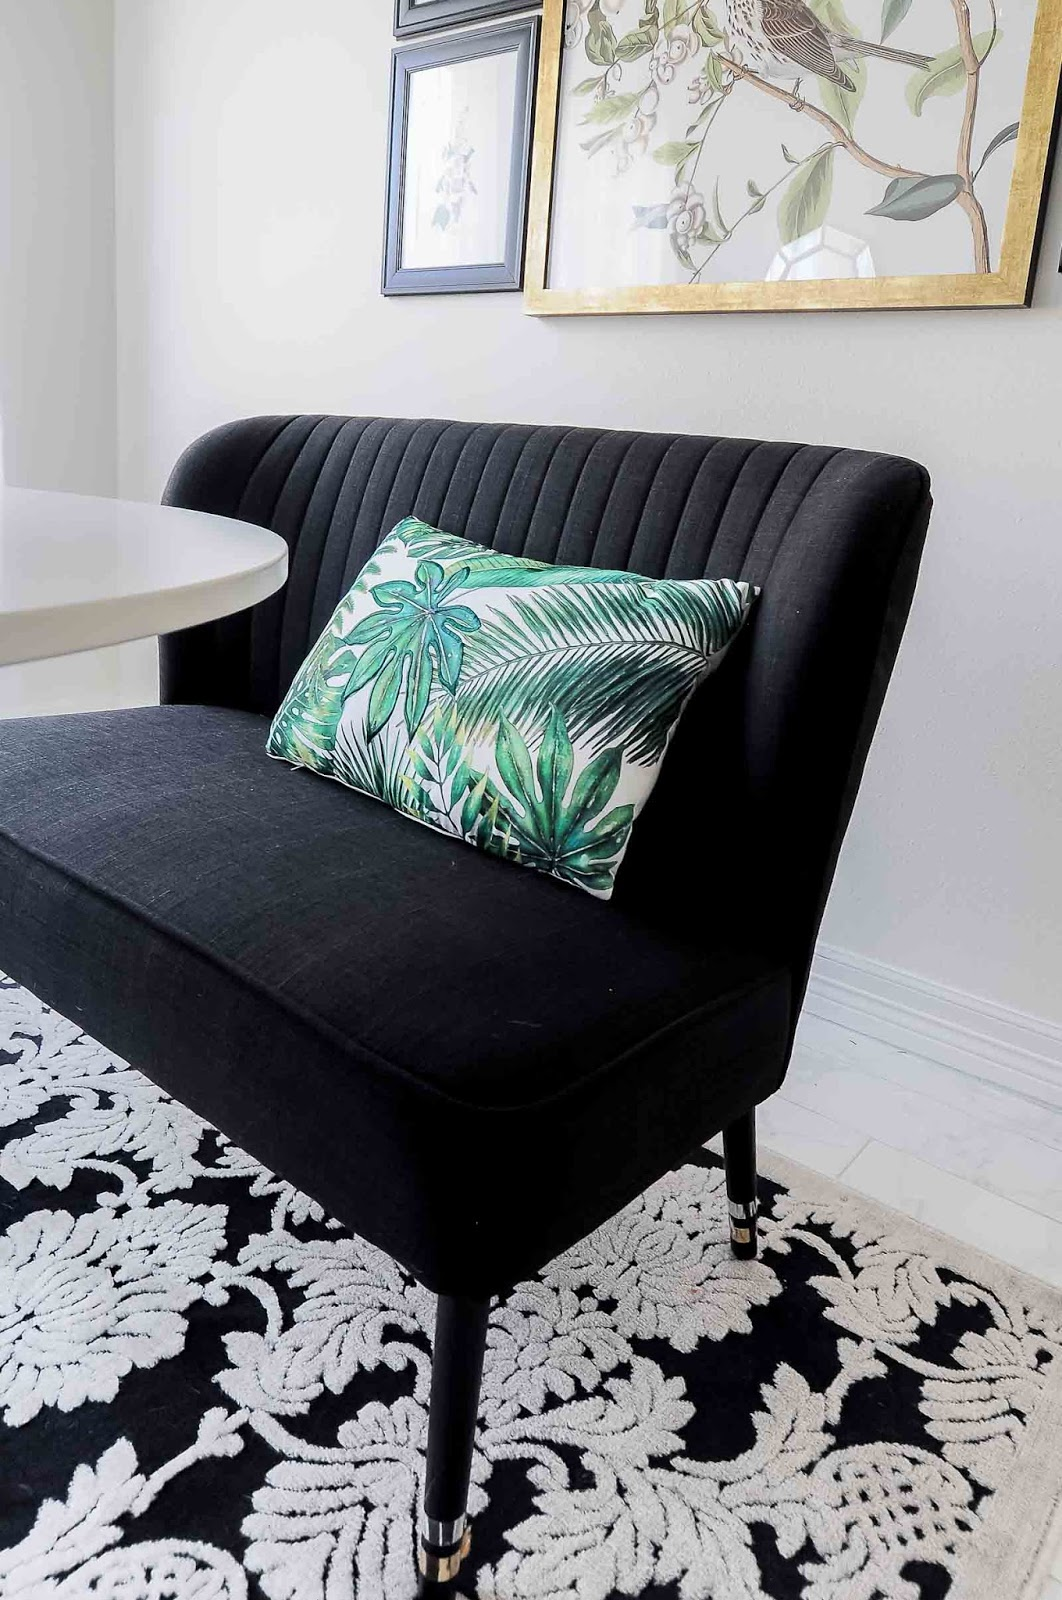 Black bench with a palm leaf pillow and botanical and audubon gallery wall in a dining room space.